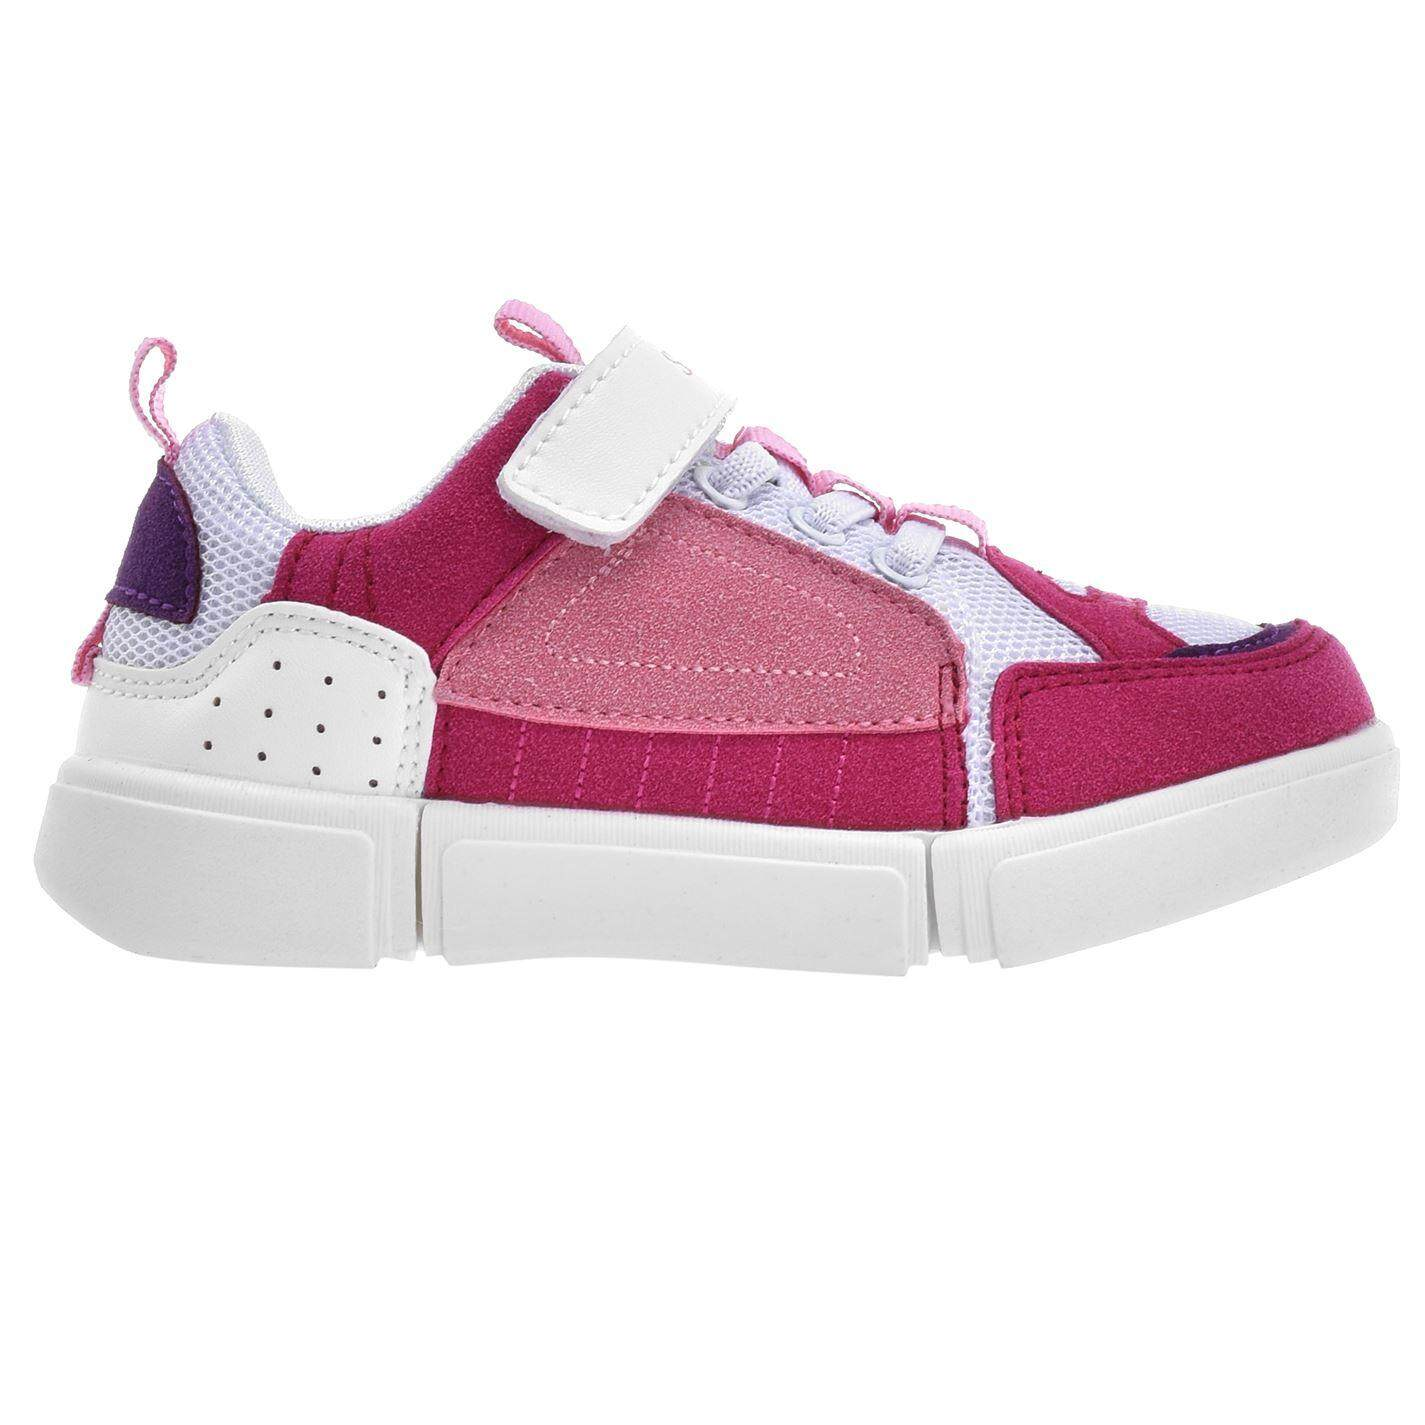 239742e5842 Girls  Running Shoes - Buy Girls  Running Shoes at Best Price in ...